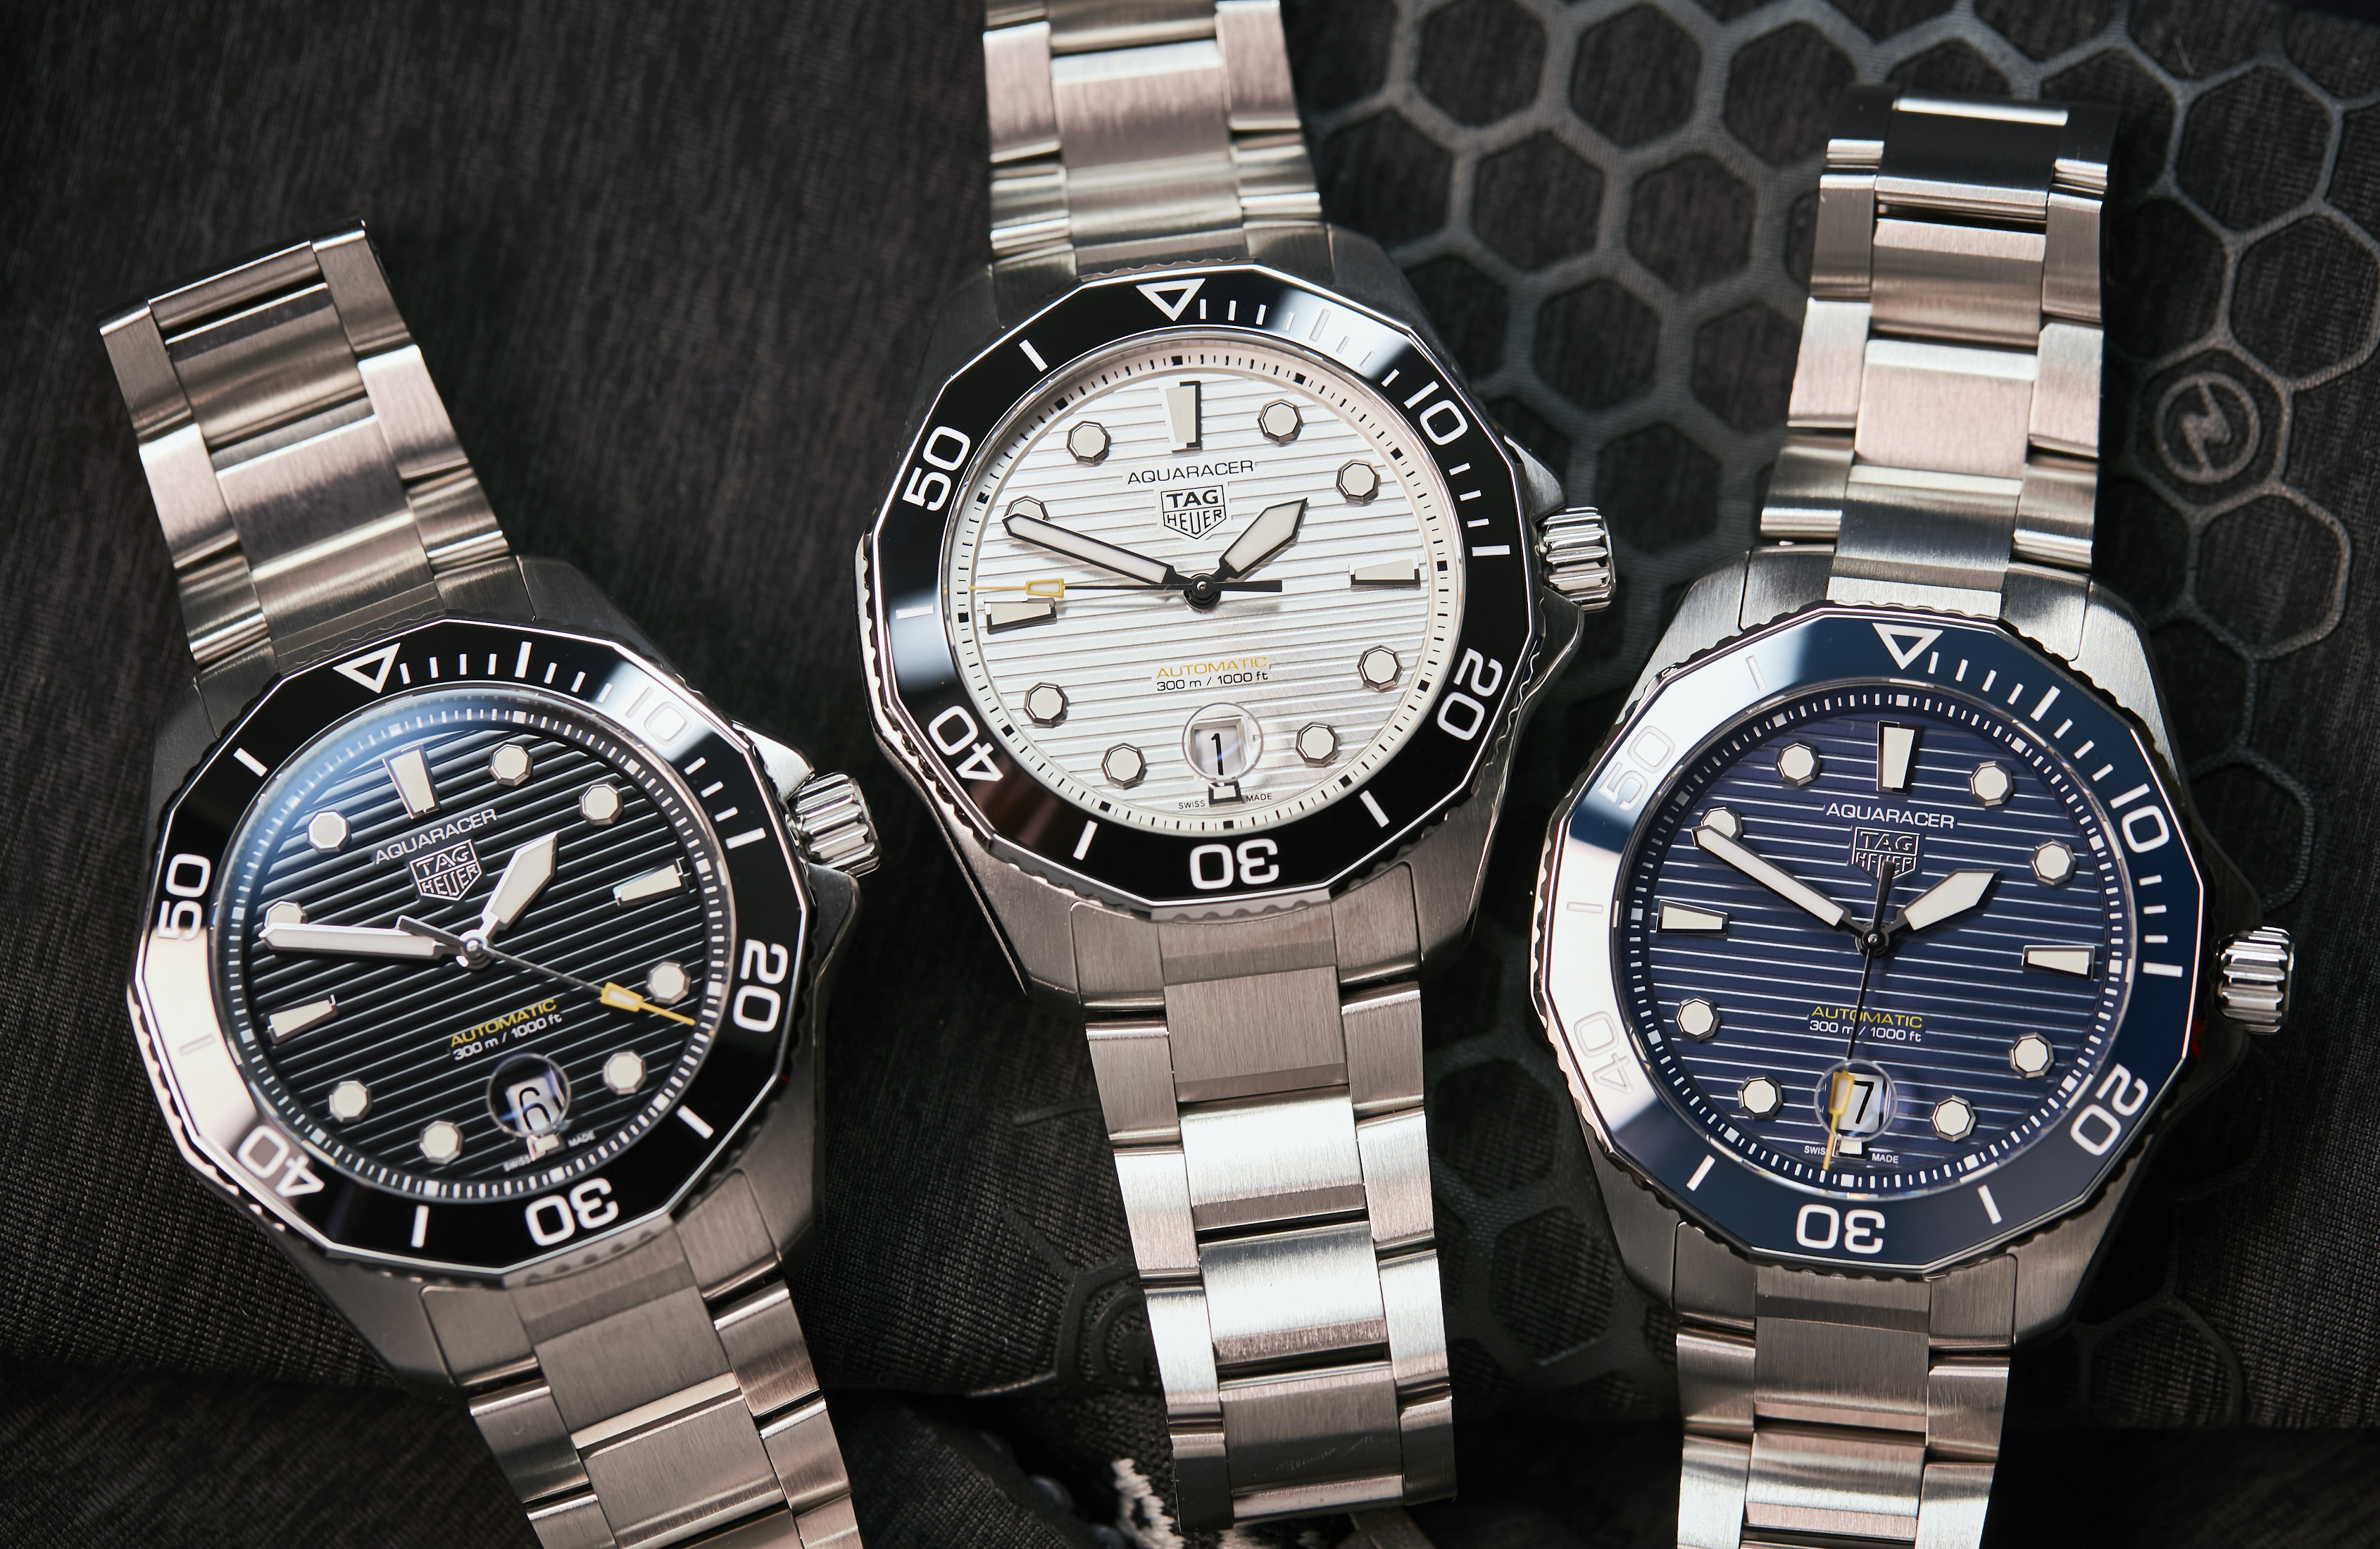 TAG Heuer Aquaracer Professional 300 collection